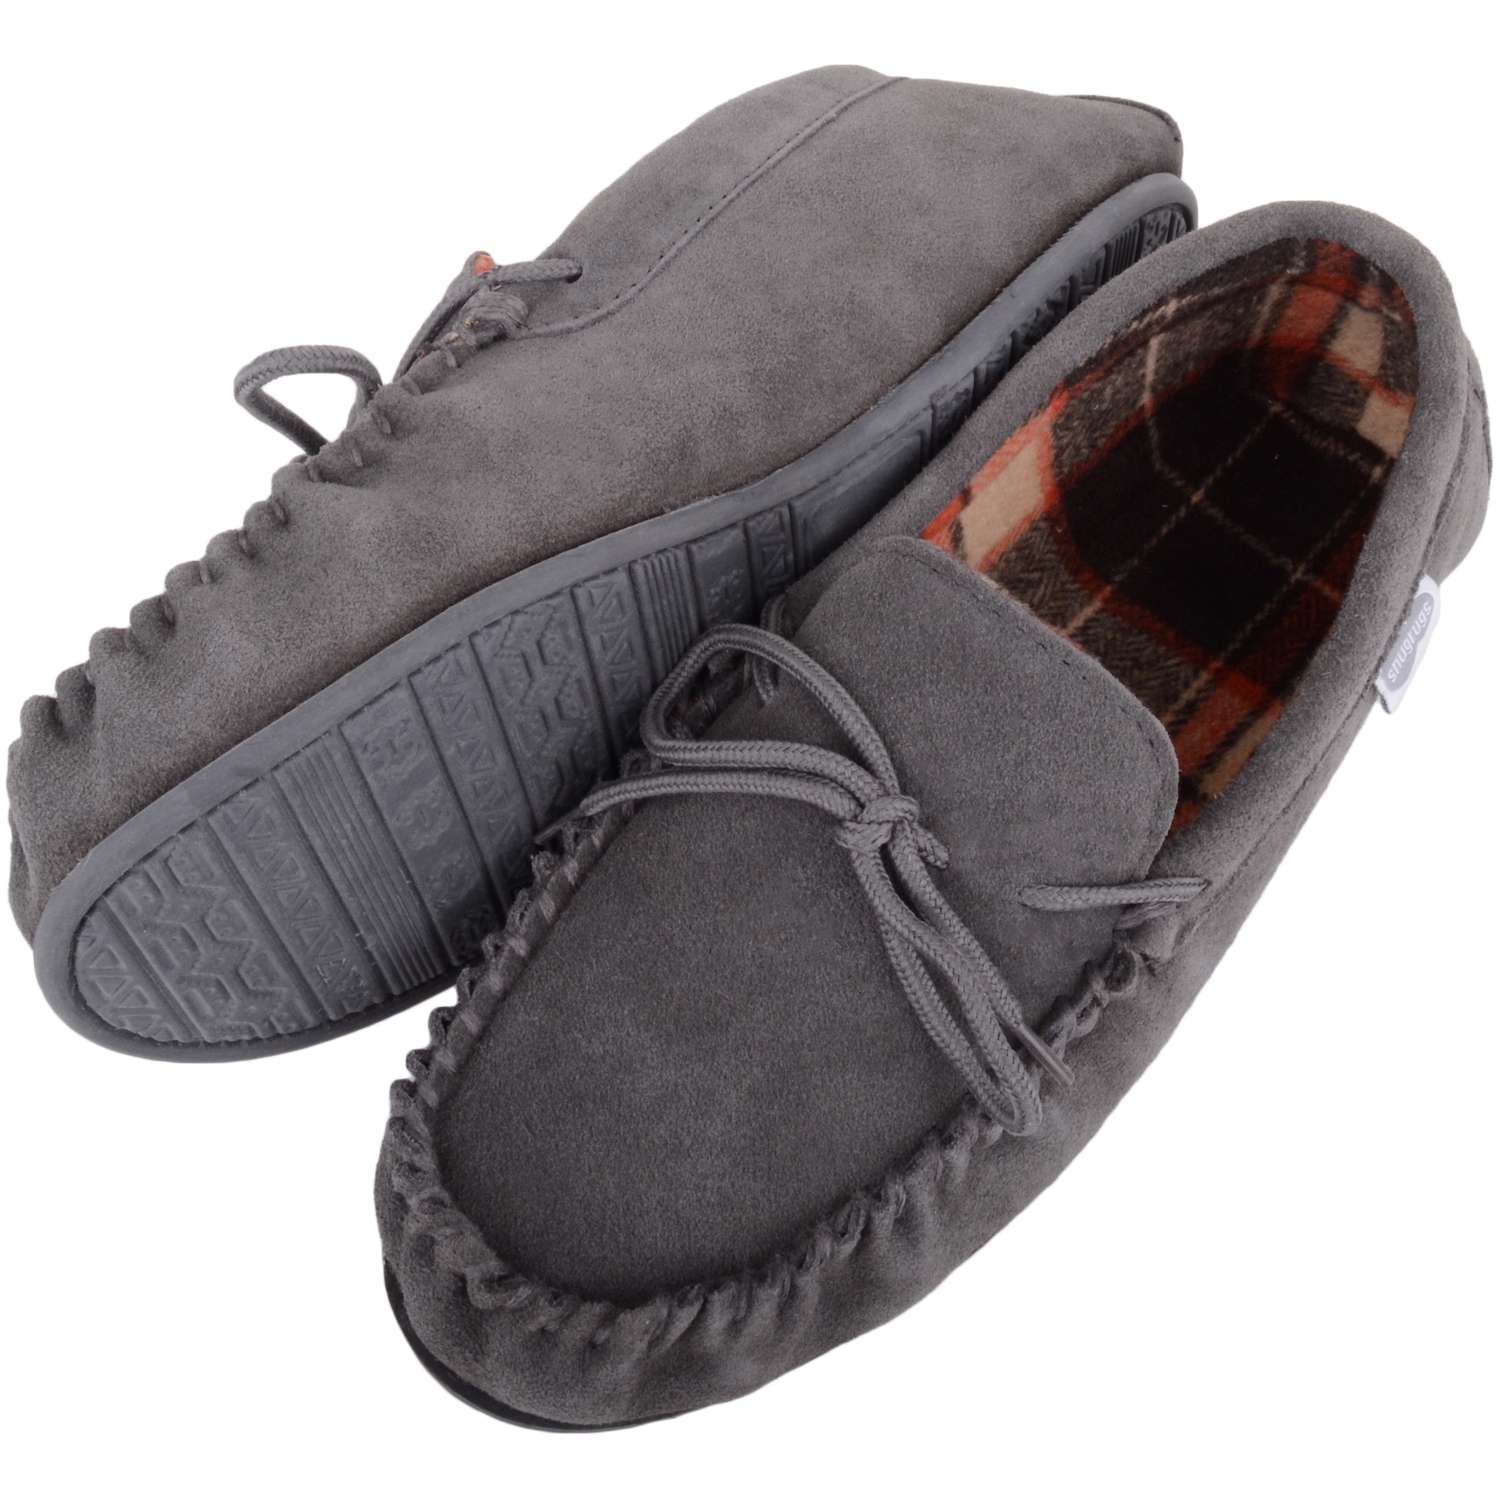 Snugrugs - Mens Cotton Lined Suede Moccasins - Grey